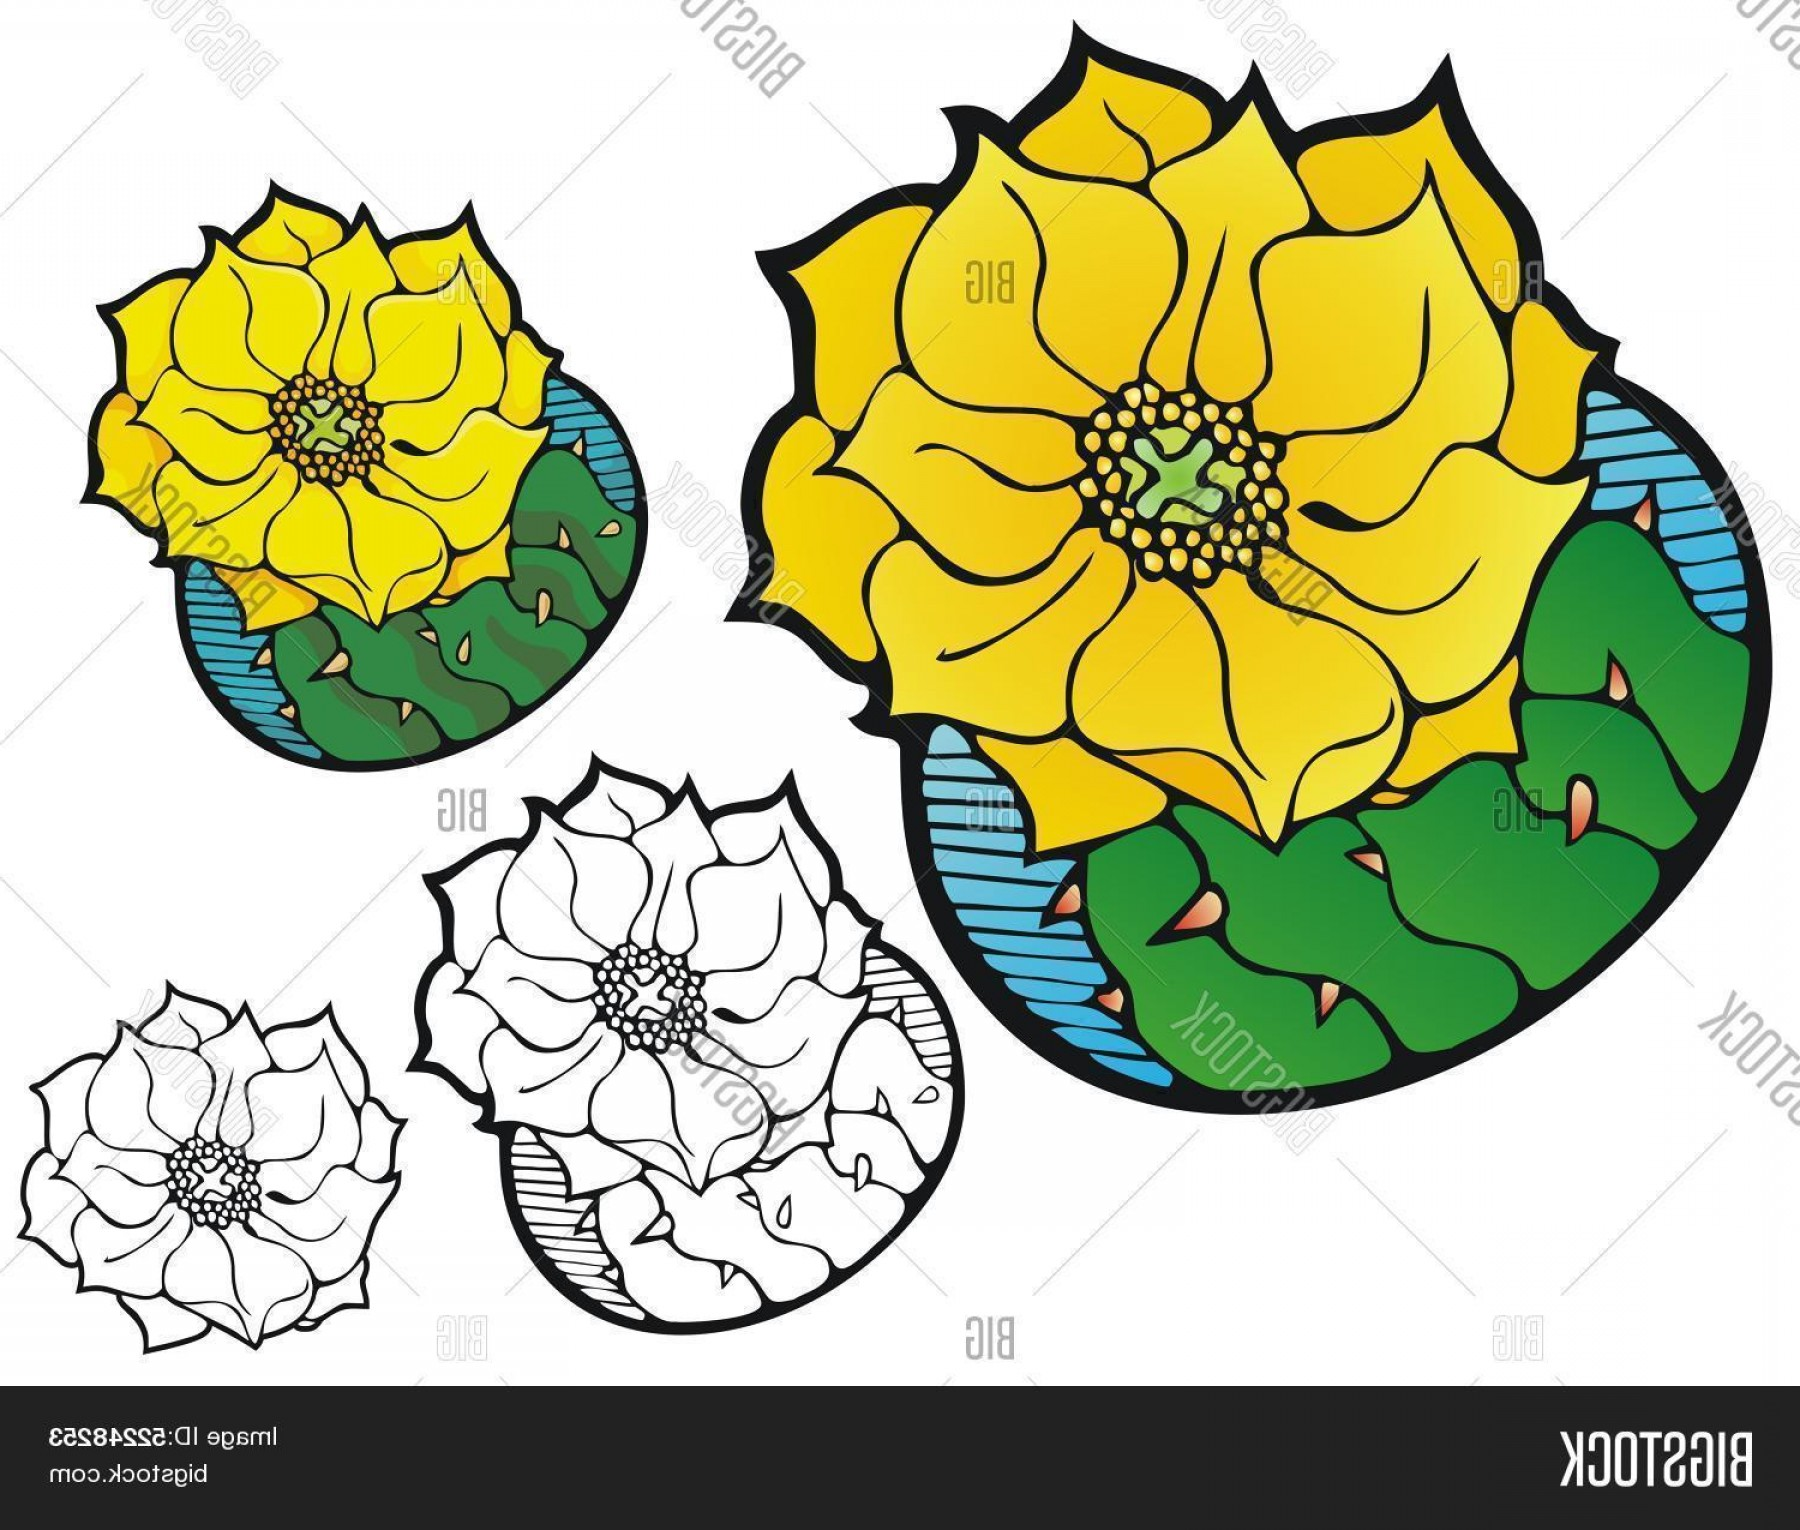 Cactus And Flower Vector: Stock Vector Prickly Pear Cactus Flower